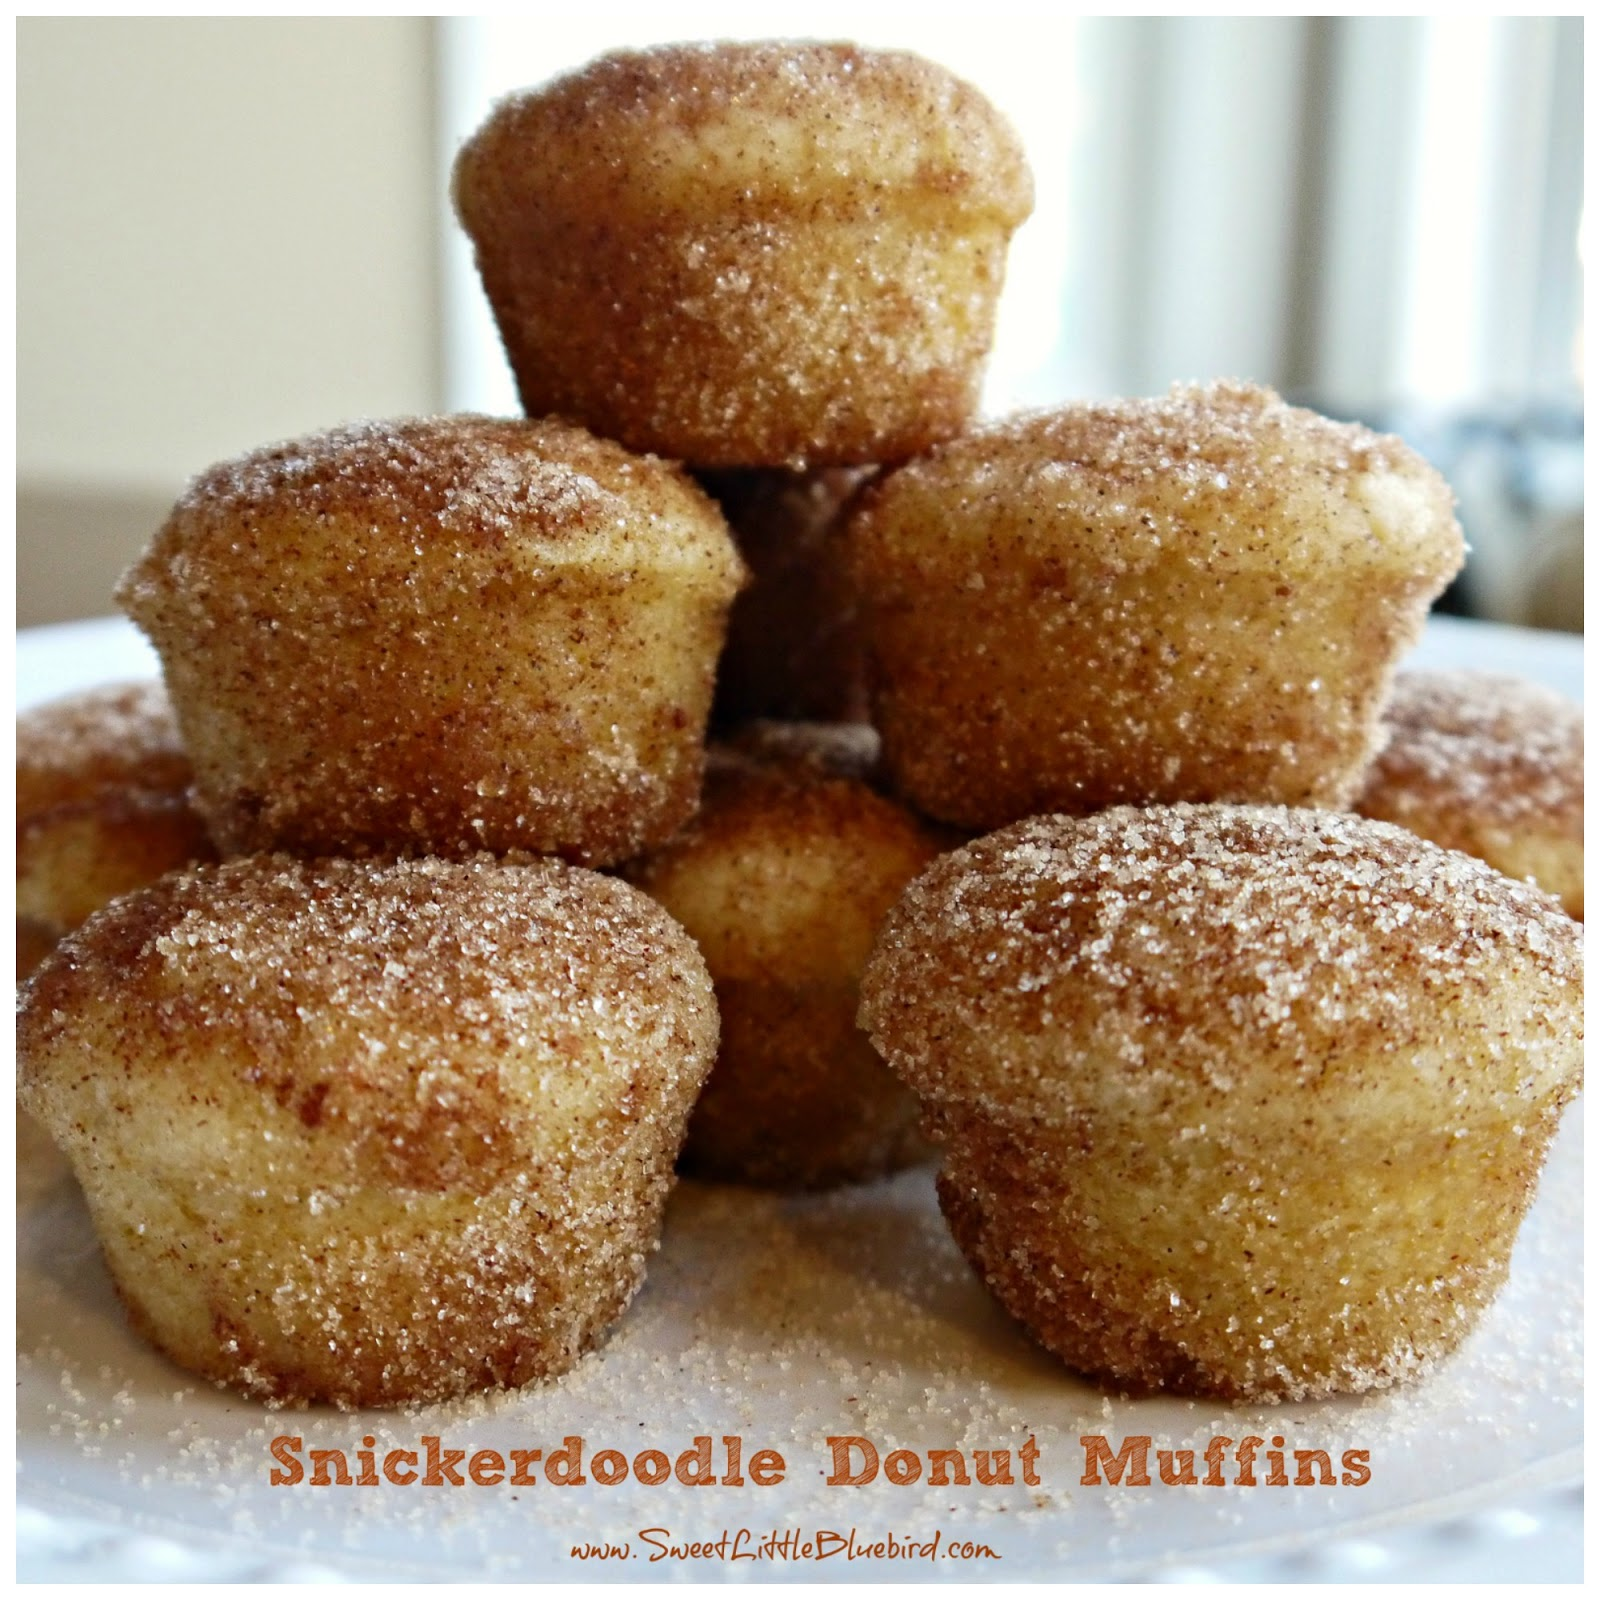 ... have the BEST recipe to share today!!! SNICKERDOODLE DONUT MUFFINS